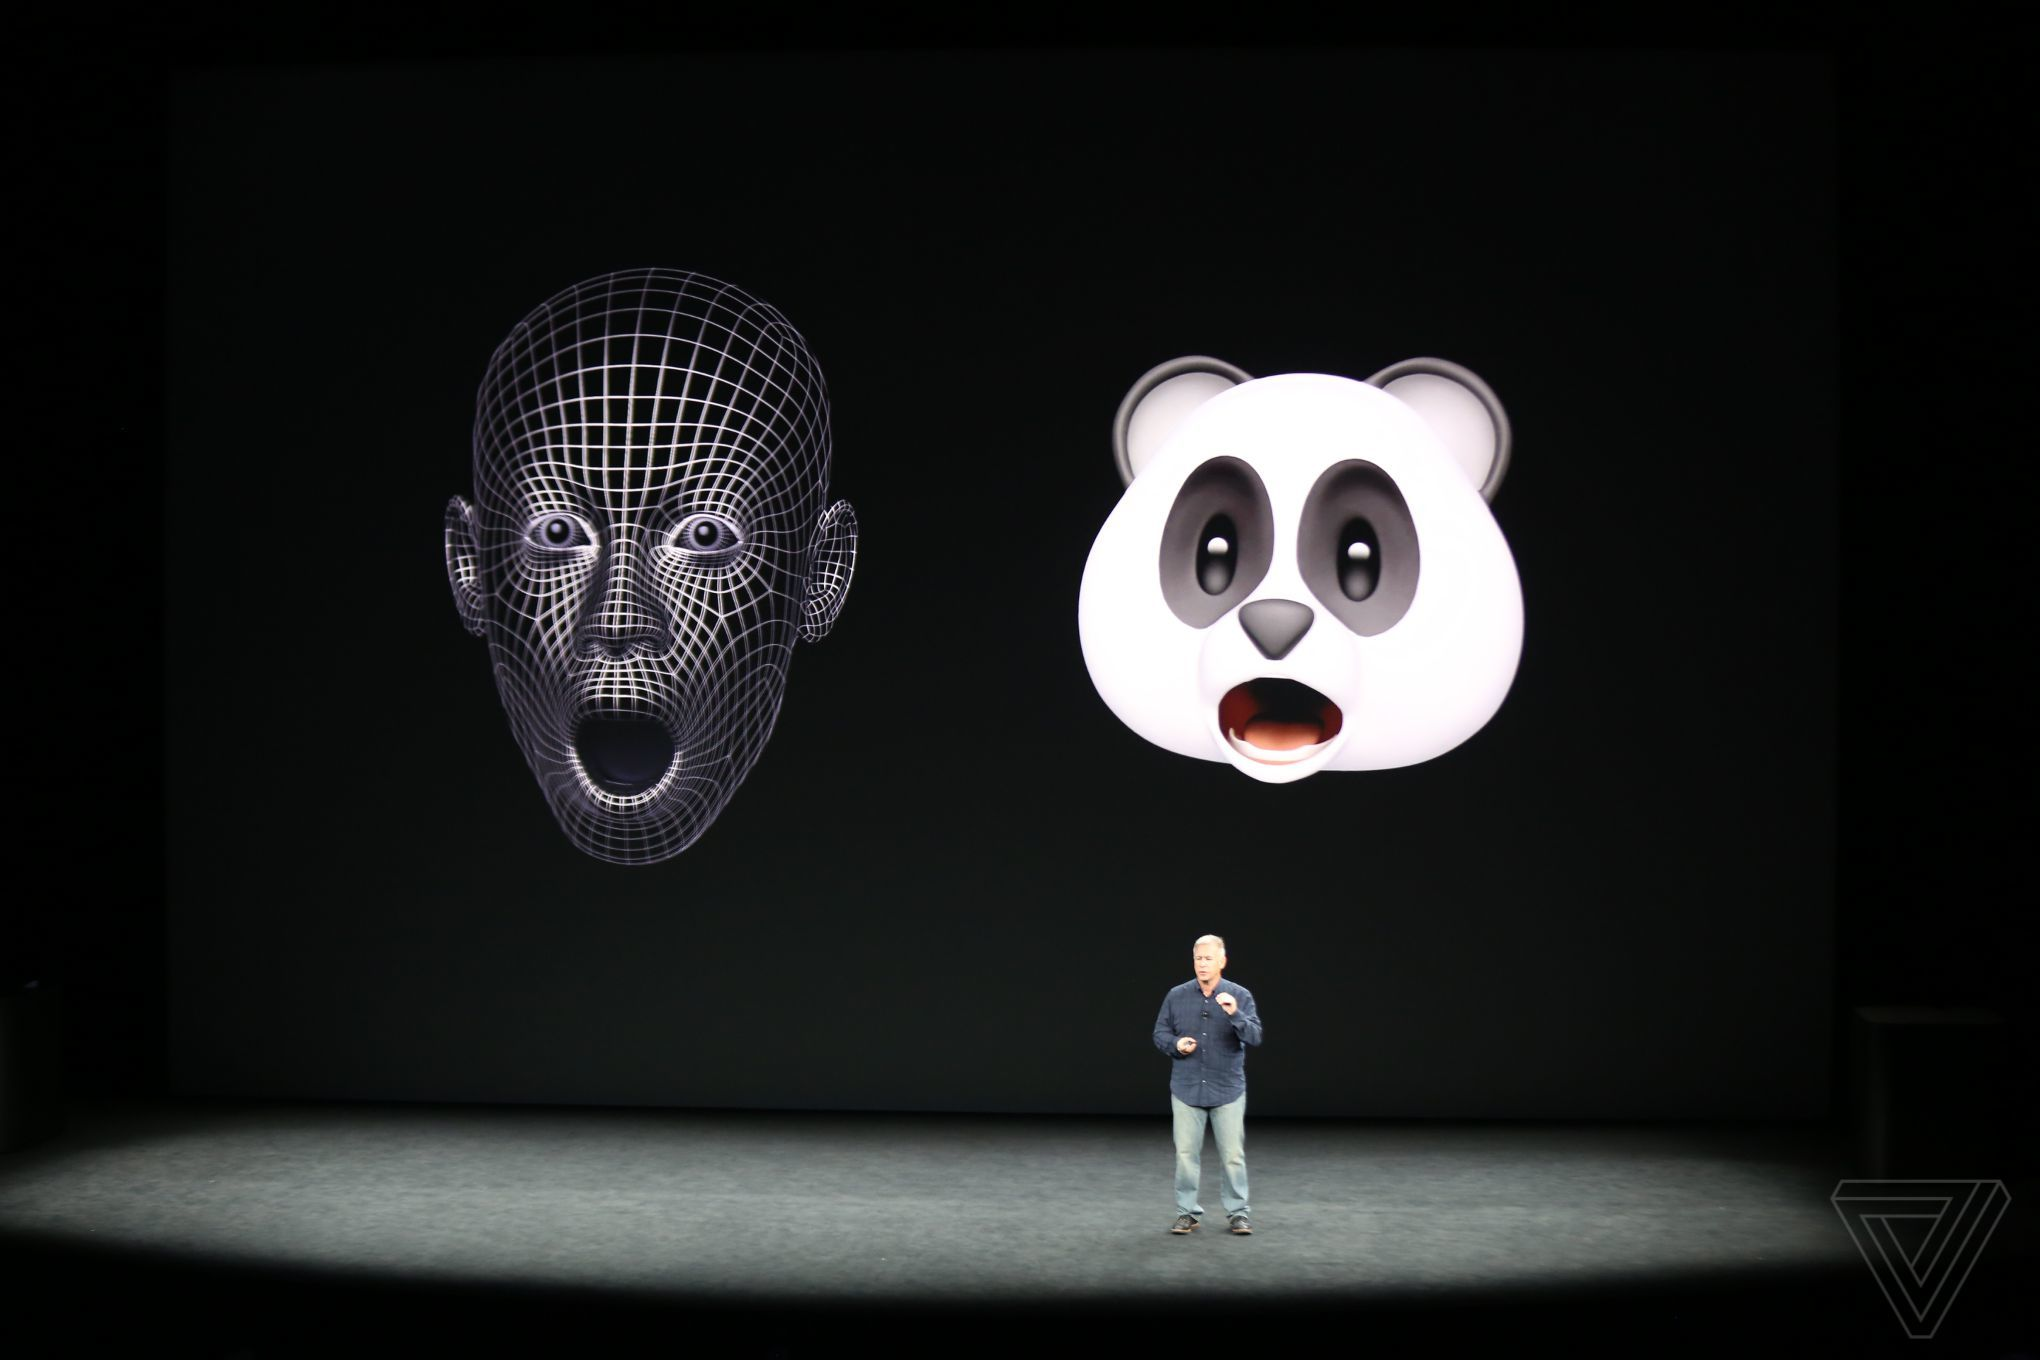 Apple Describes Animoji As Custom Animated Messages That Use Your Voice And Reflect Facial Expressions Is Working On A Wide Range Of 3D Emoji